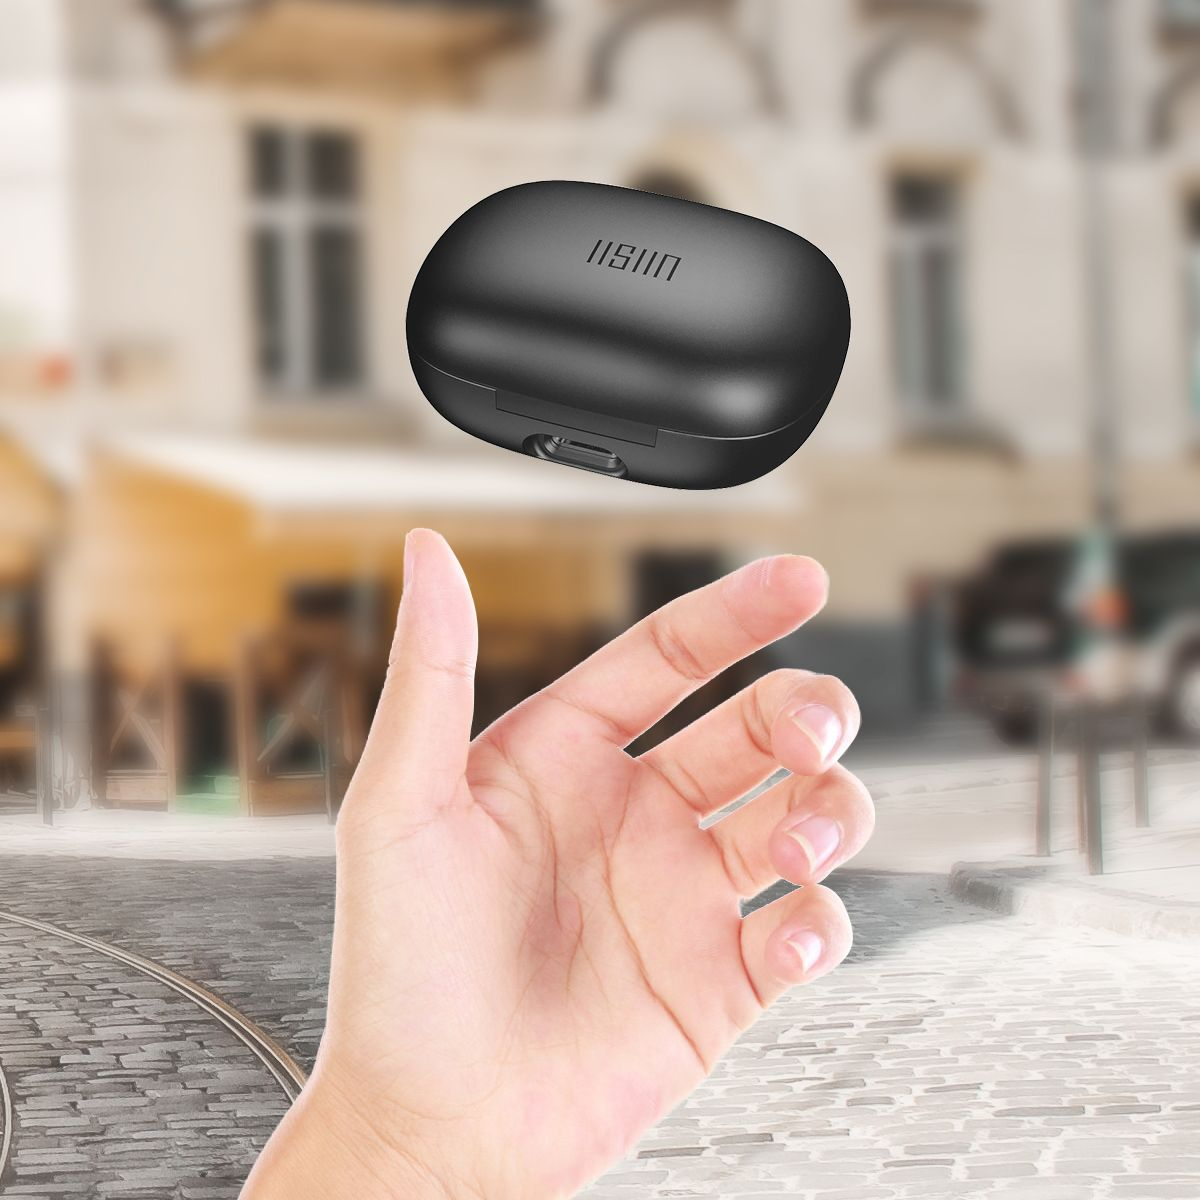 TWS21 SongBirds Airbuds in 2020 Wireless earbuds